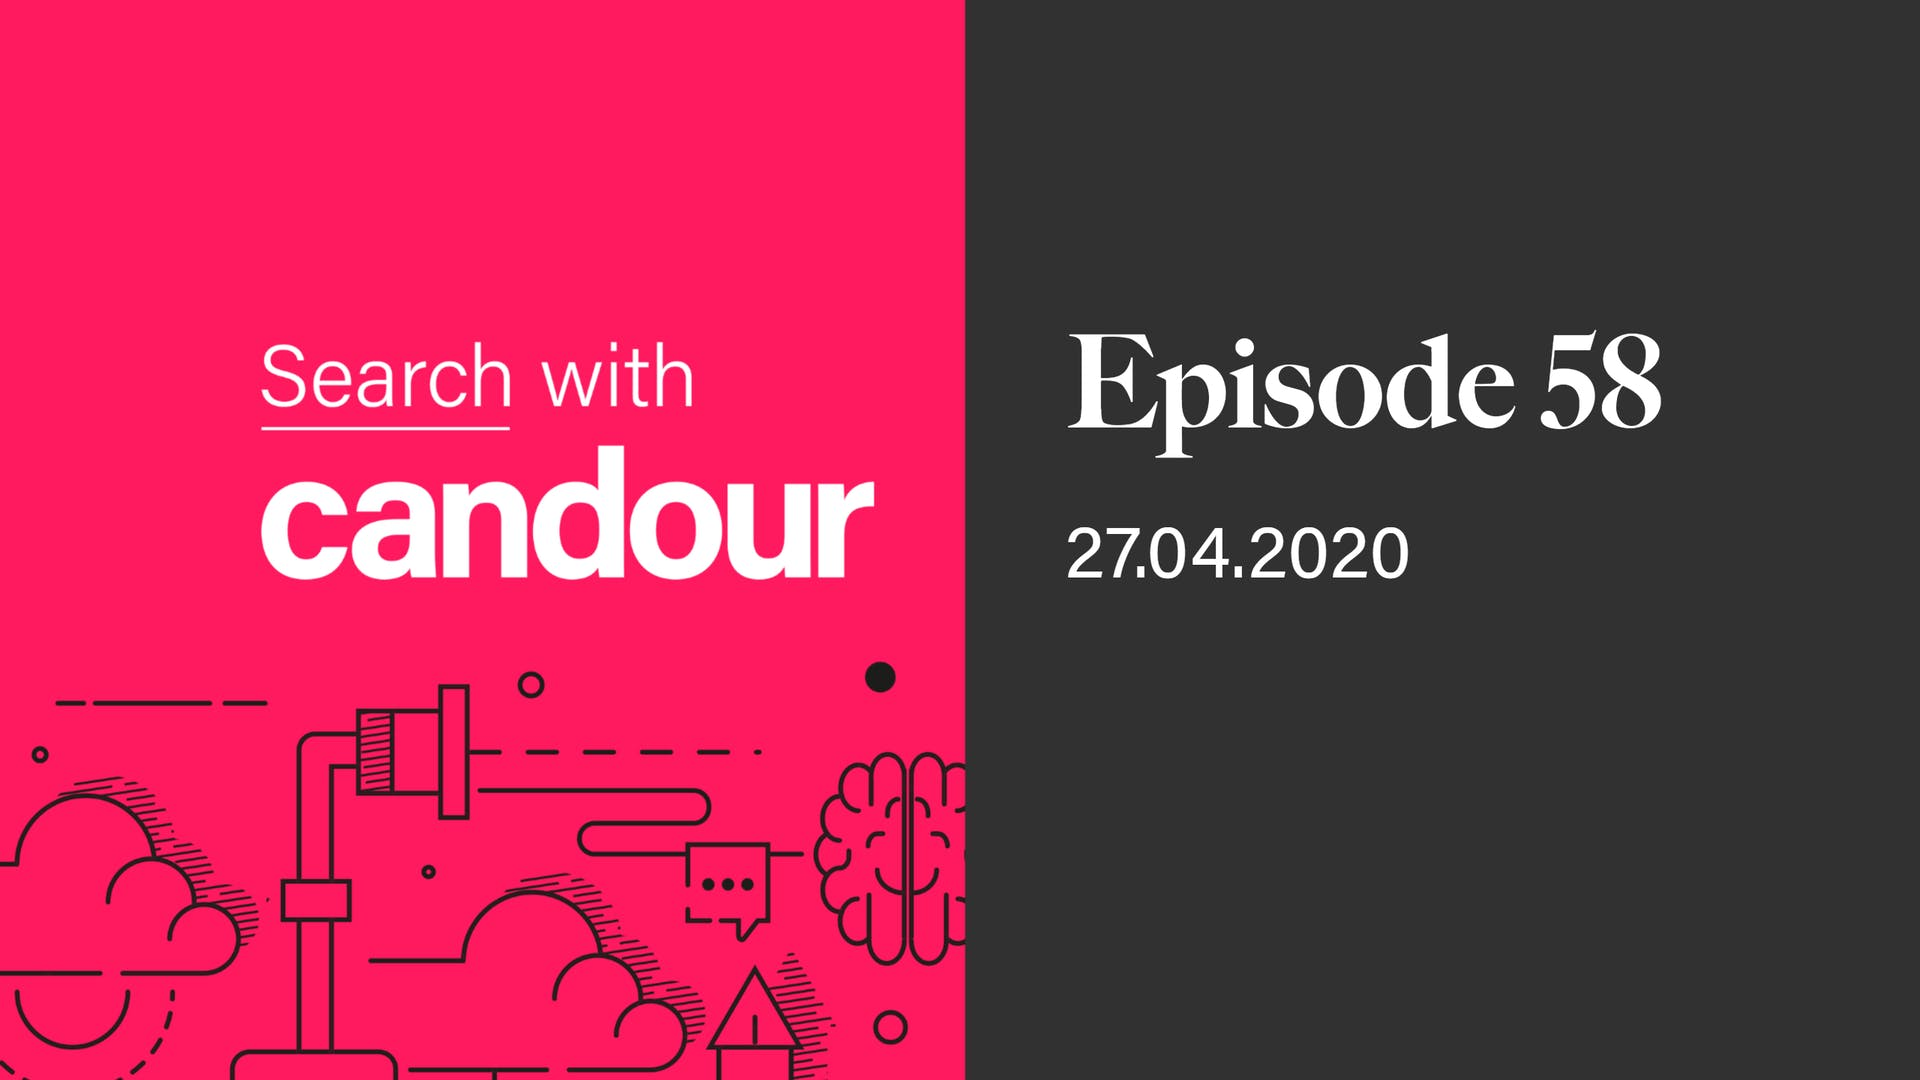 Search with Candour - Episode 58